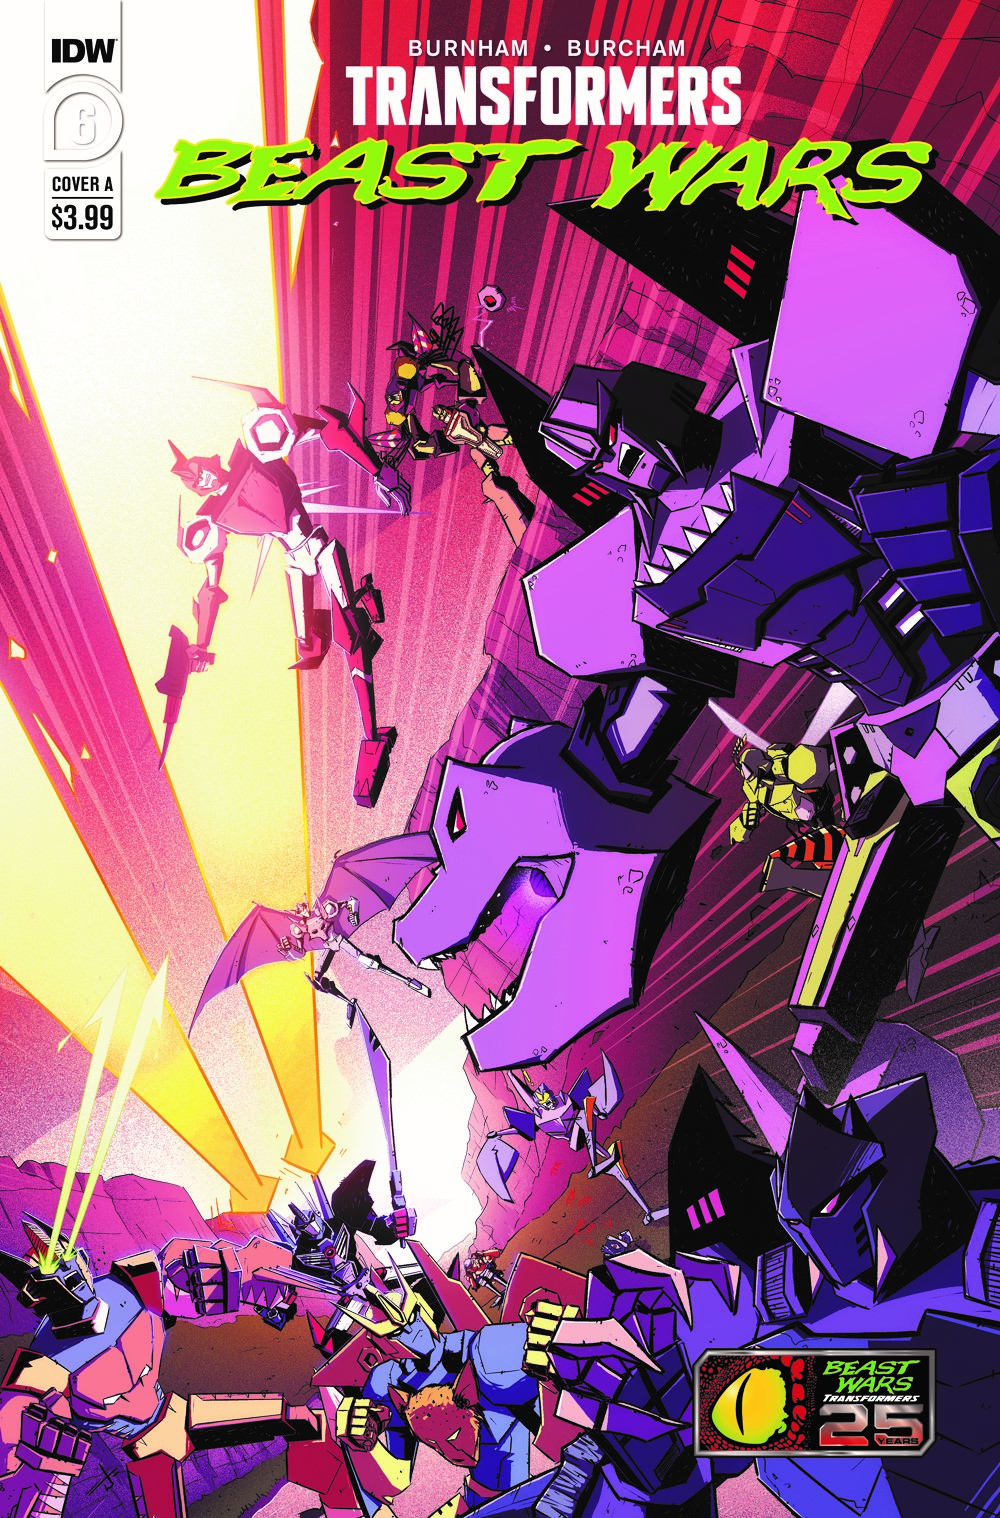 TFBW06-Cover-A ComicList: IDW Publishing New Releases for 07/28/2021